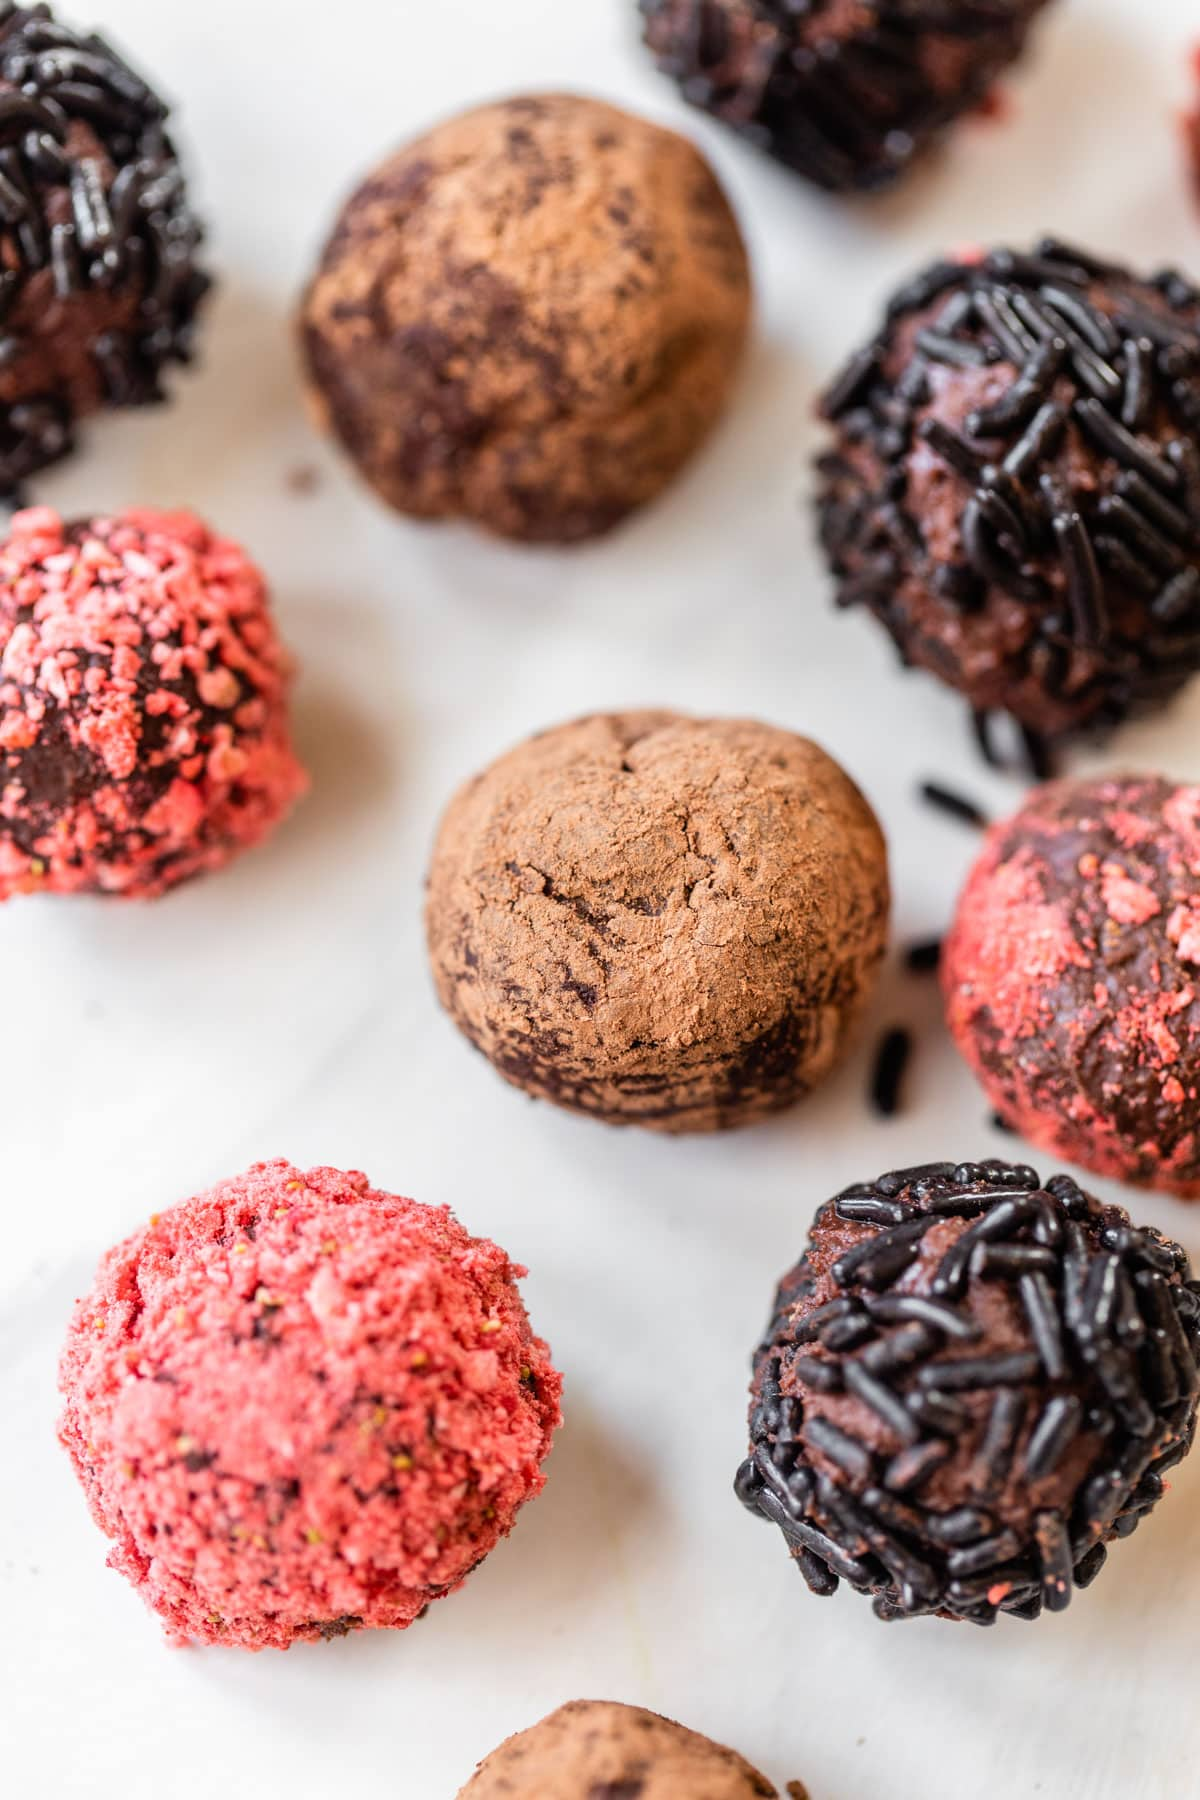 Red wine and chocolate together make the best homemade truffles